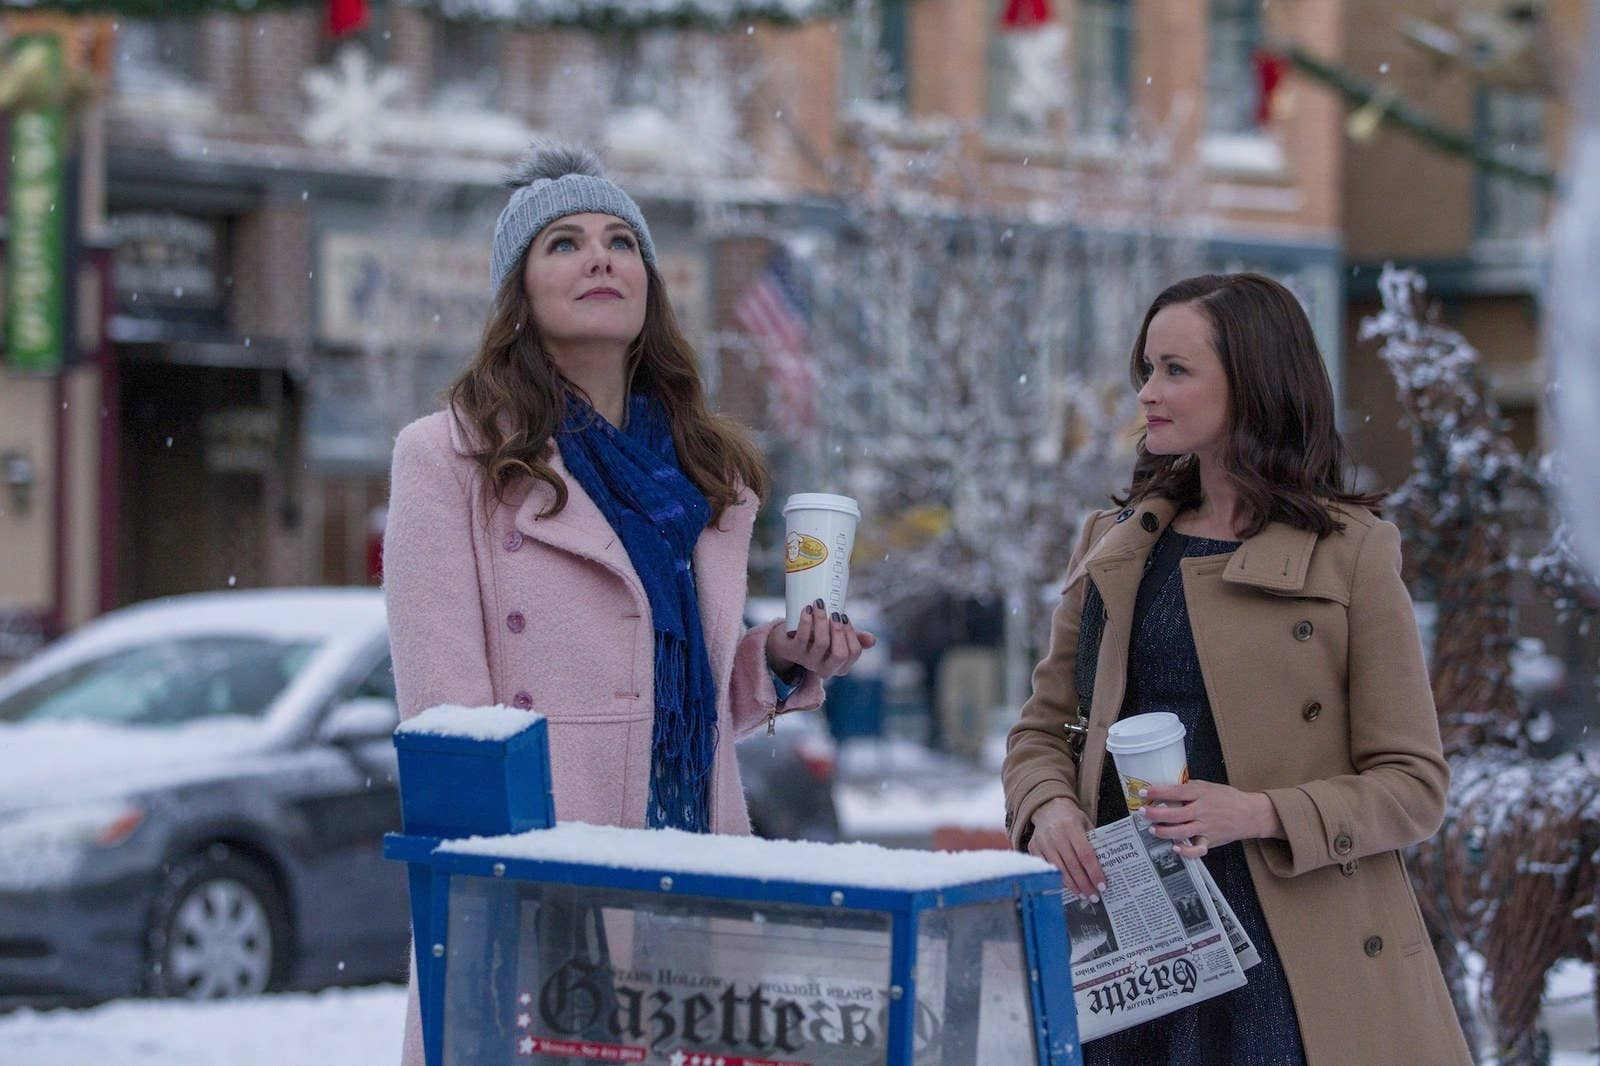 The full story behind how the gilmore girls theme song came to be lorelai lauren graham left and rory alexis bledel in the gilmore ccuart Images